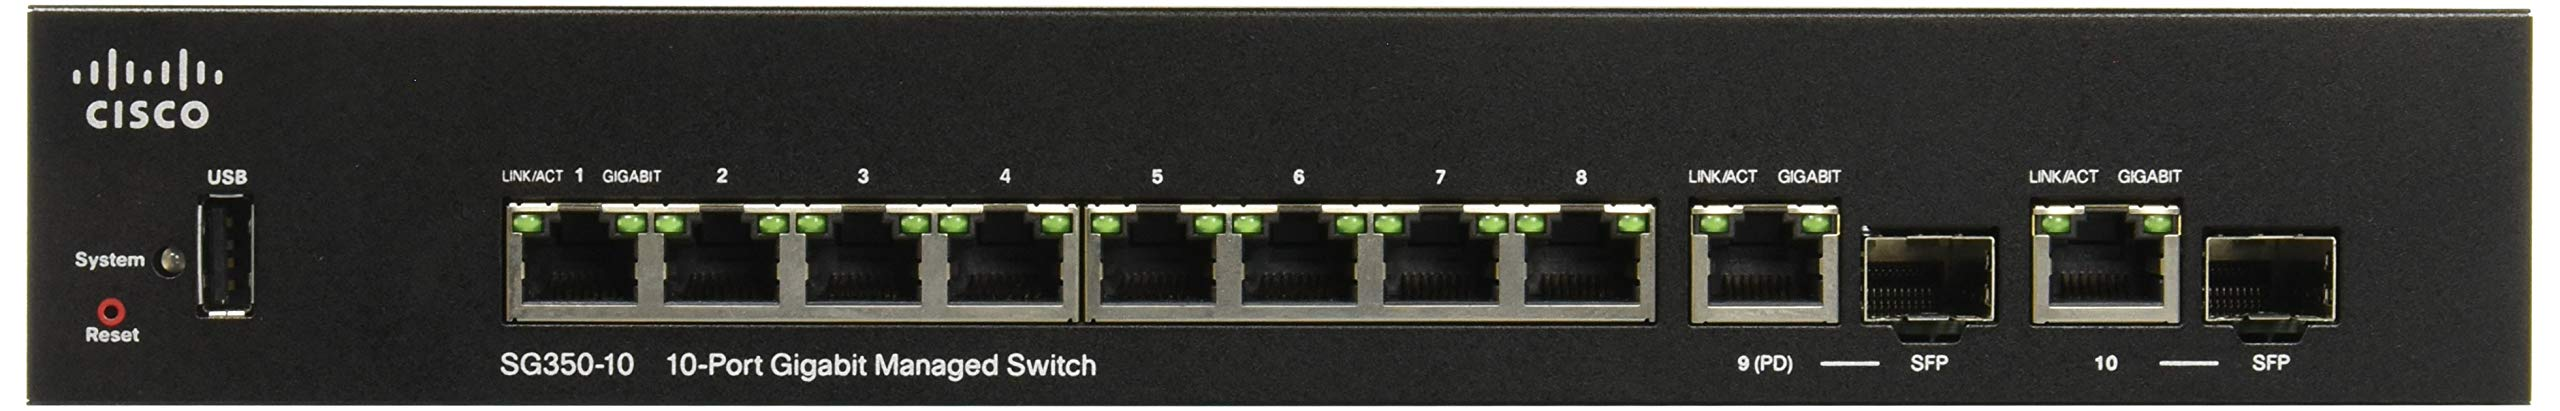 CISCO SYSTEMS Sg350 10-Port Gigabit Managed Switch (SG35010K9NA) by Cisco Systems (Image #2)